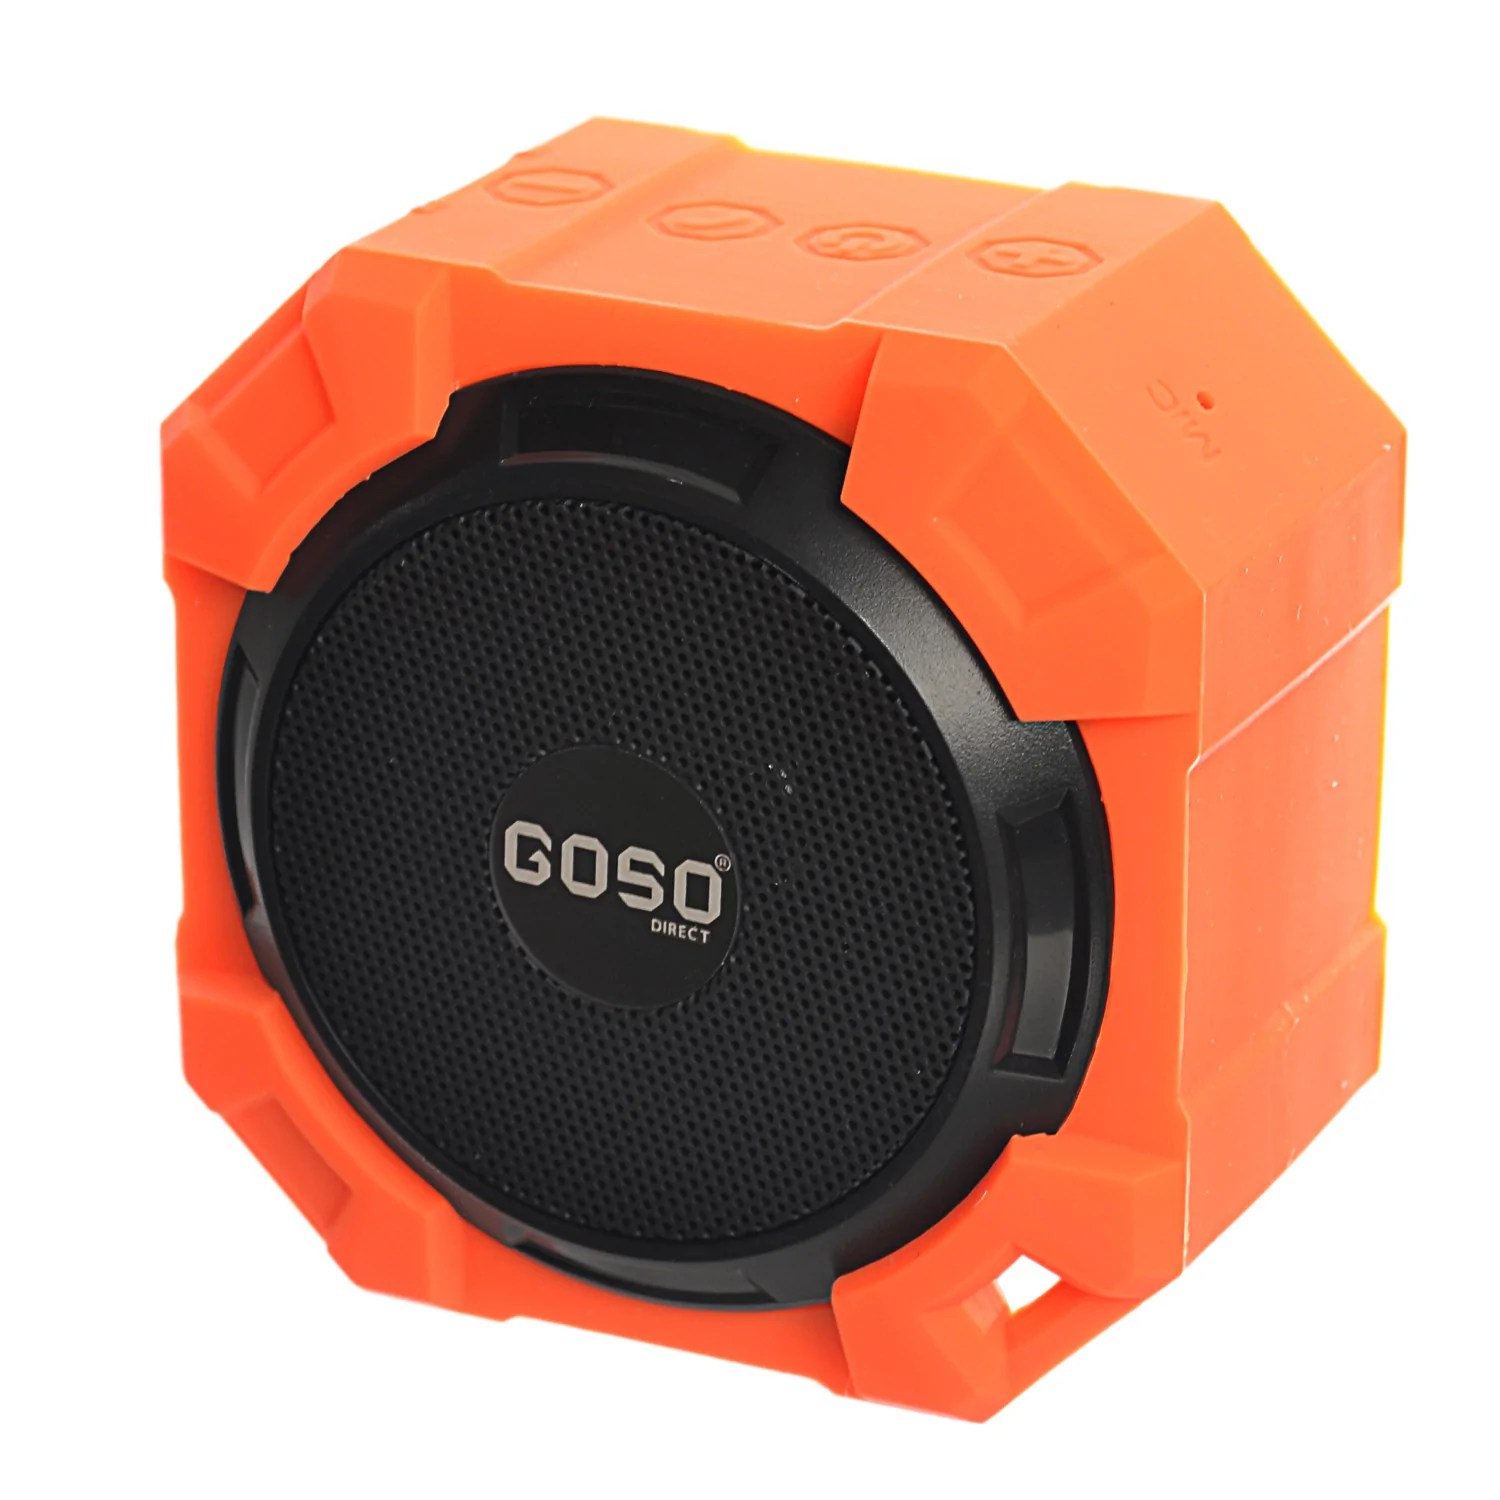 Speaker Equipment Goso Outdoor Waterproof Bluetooth Speaker Rugged Shockproof Rechargeable Wireless Portable Speaker With Microphone Orange